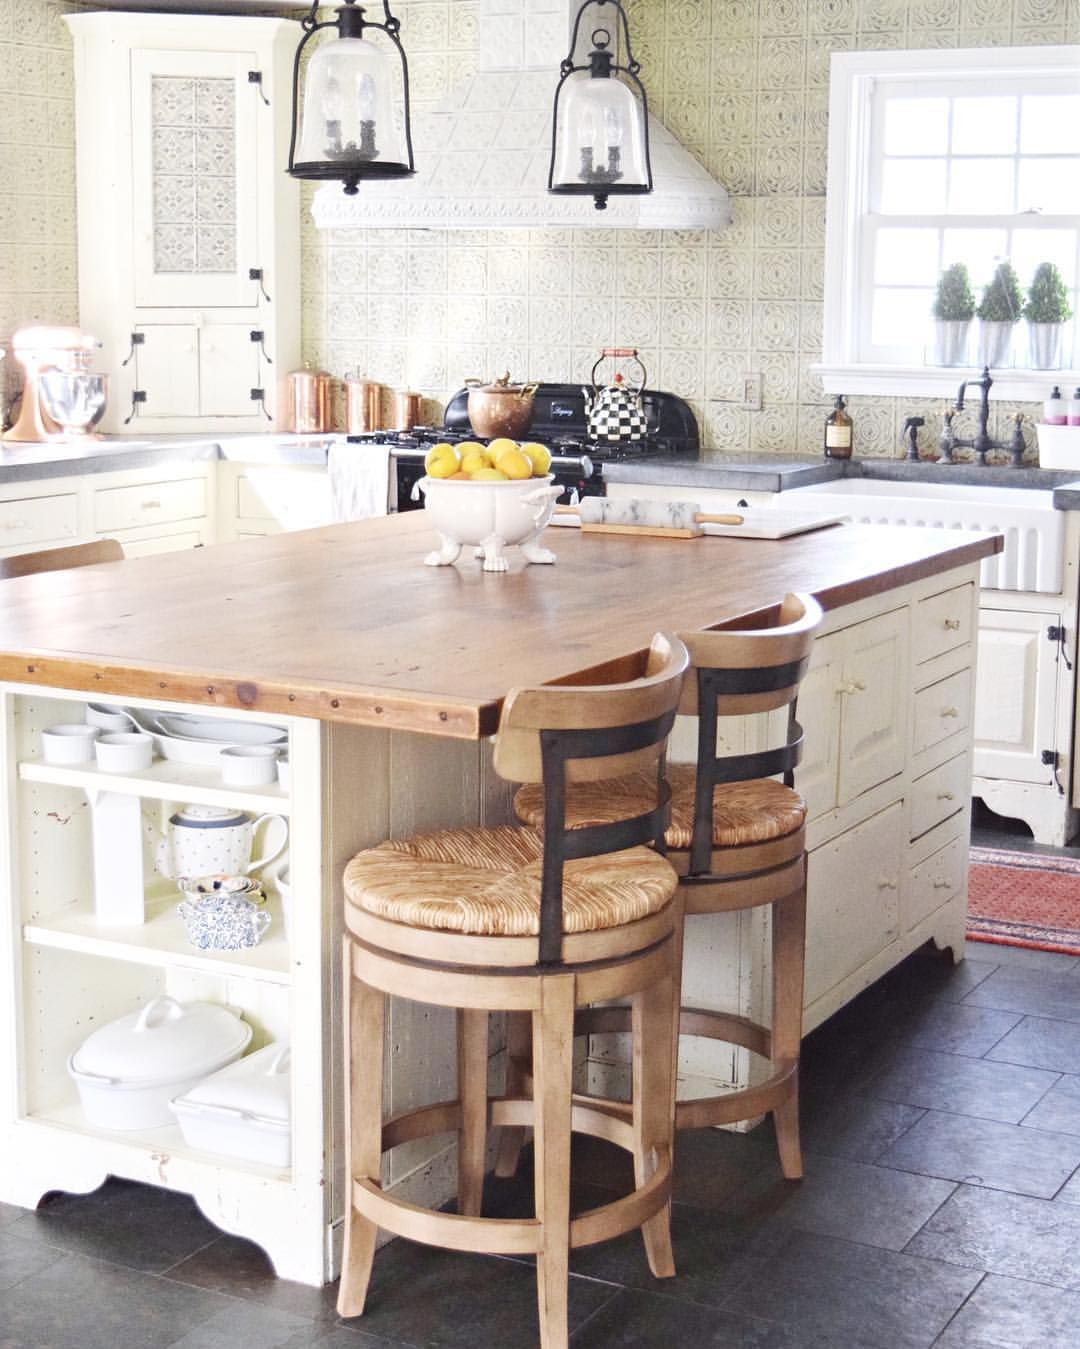 Farmhouse Kitchen With Butcher Block Island And Rustic Counter Stools Stools For Kitchen Island White Kitchen Rustic Farmhouse Kitchen Countertops